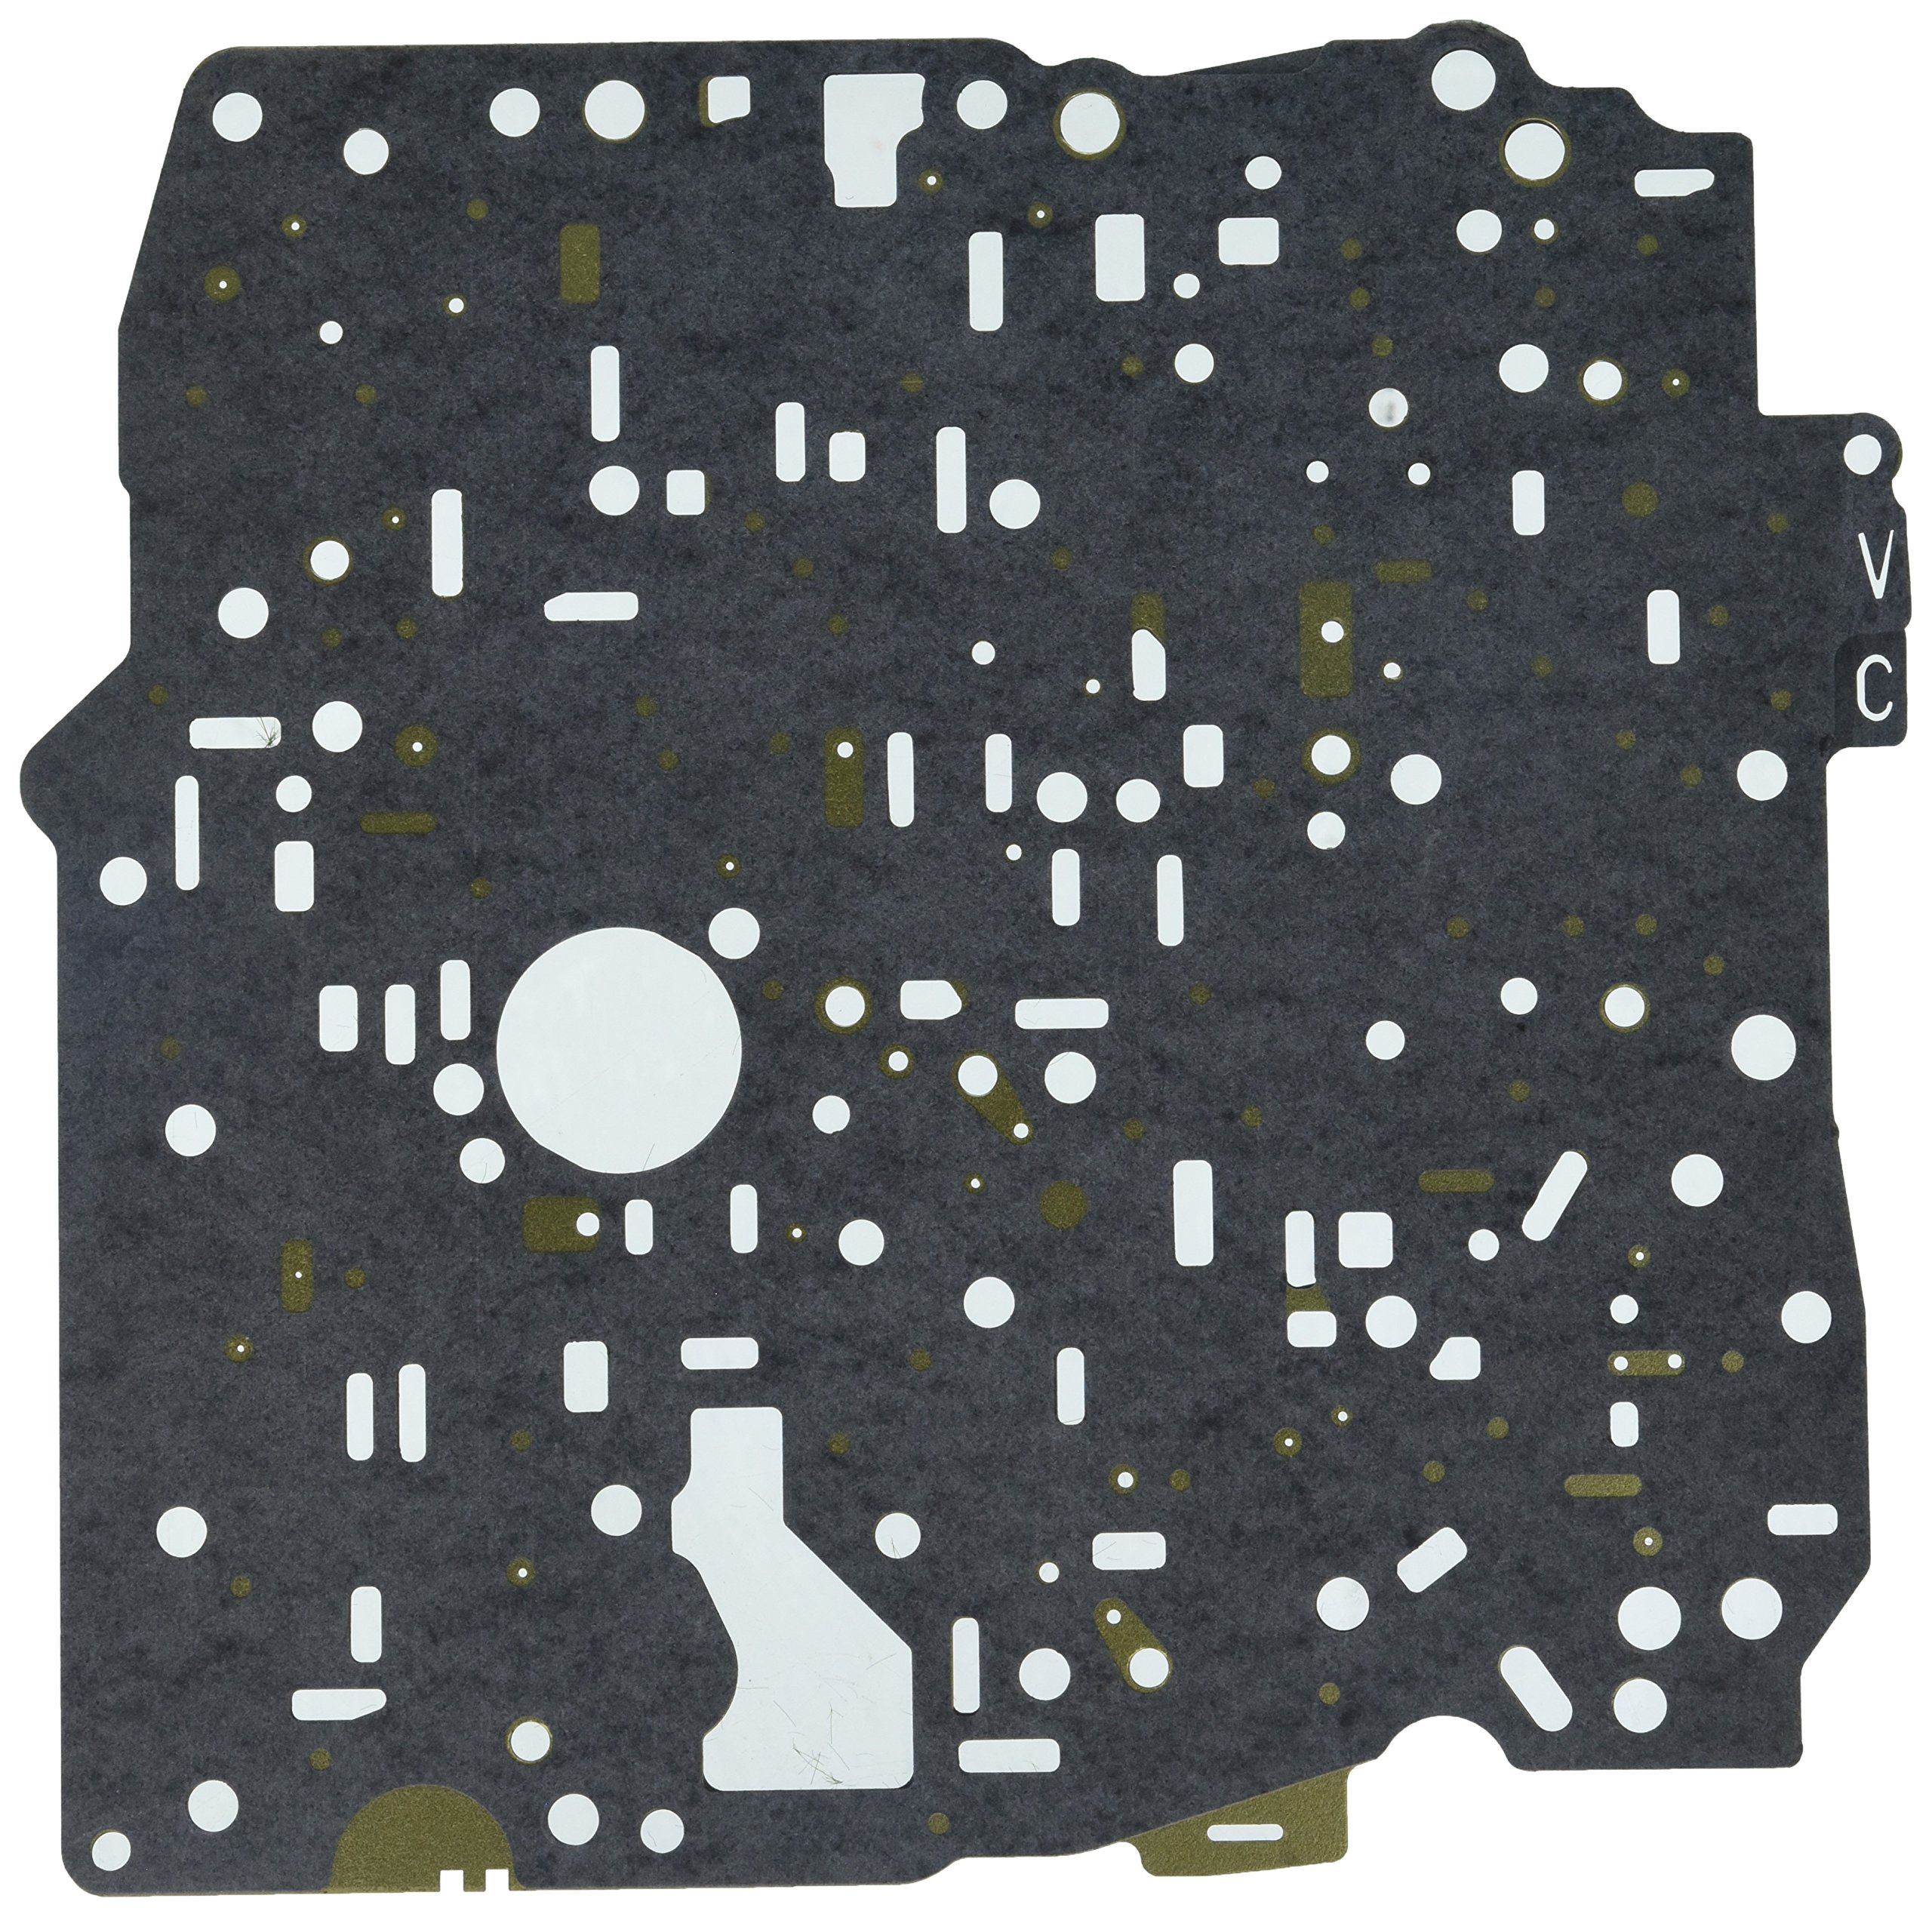 ACDelco 24217554 GM Original Equipment Automatic Transmission Control Valve Body Spacer Plate